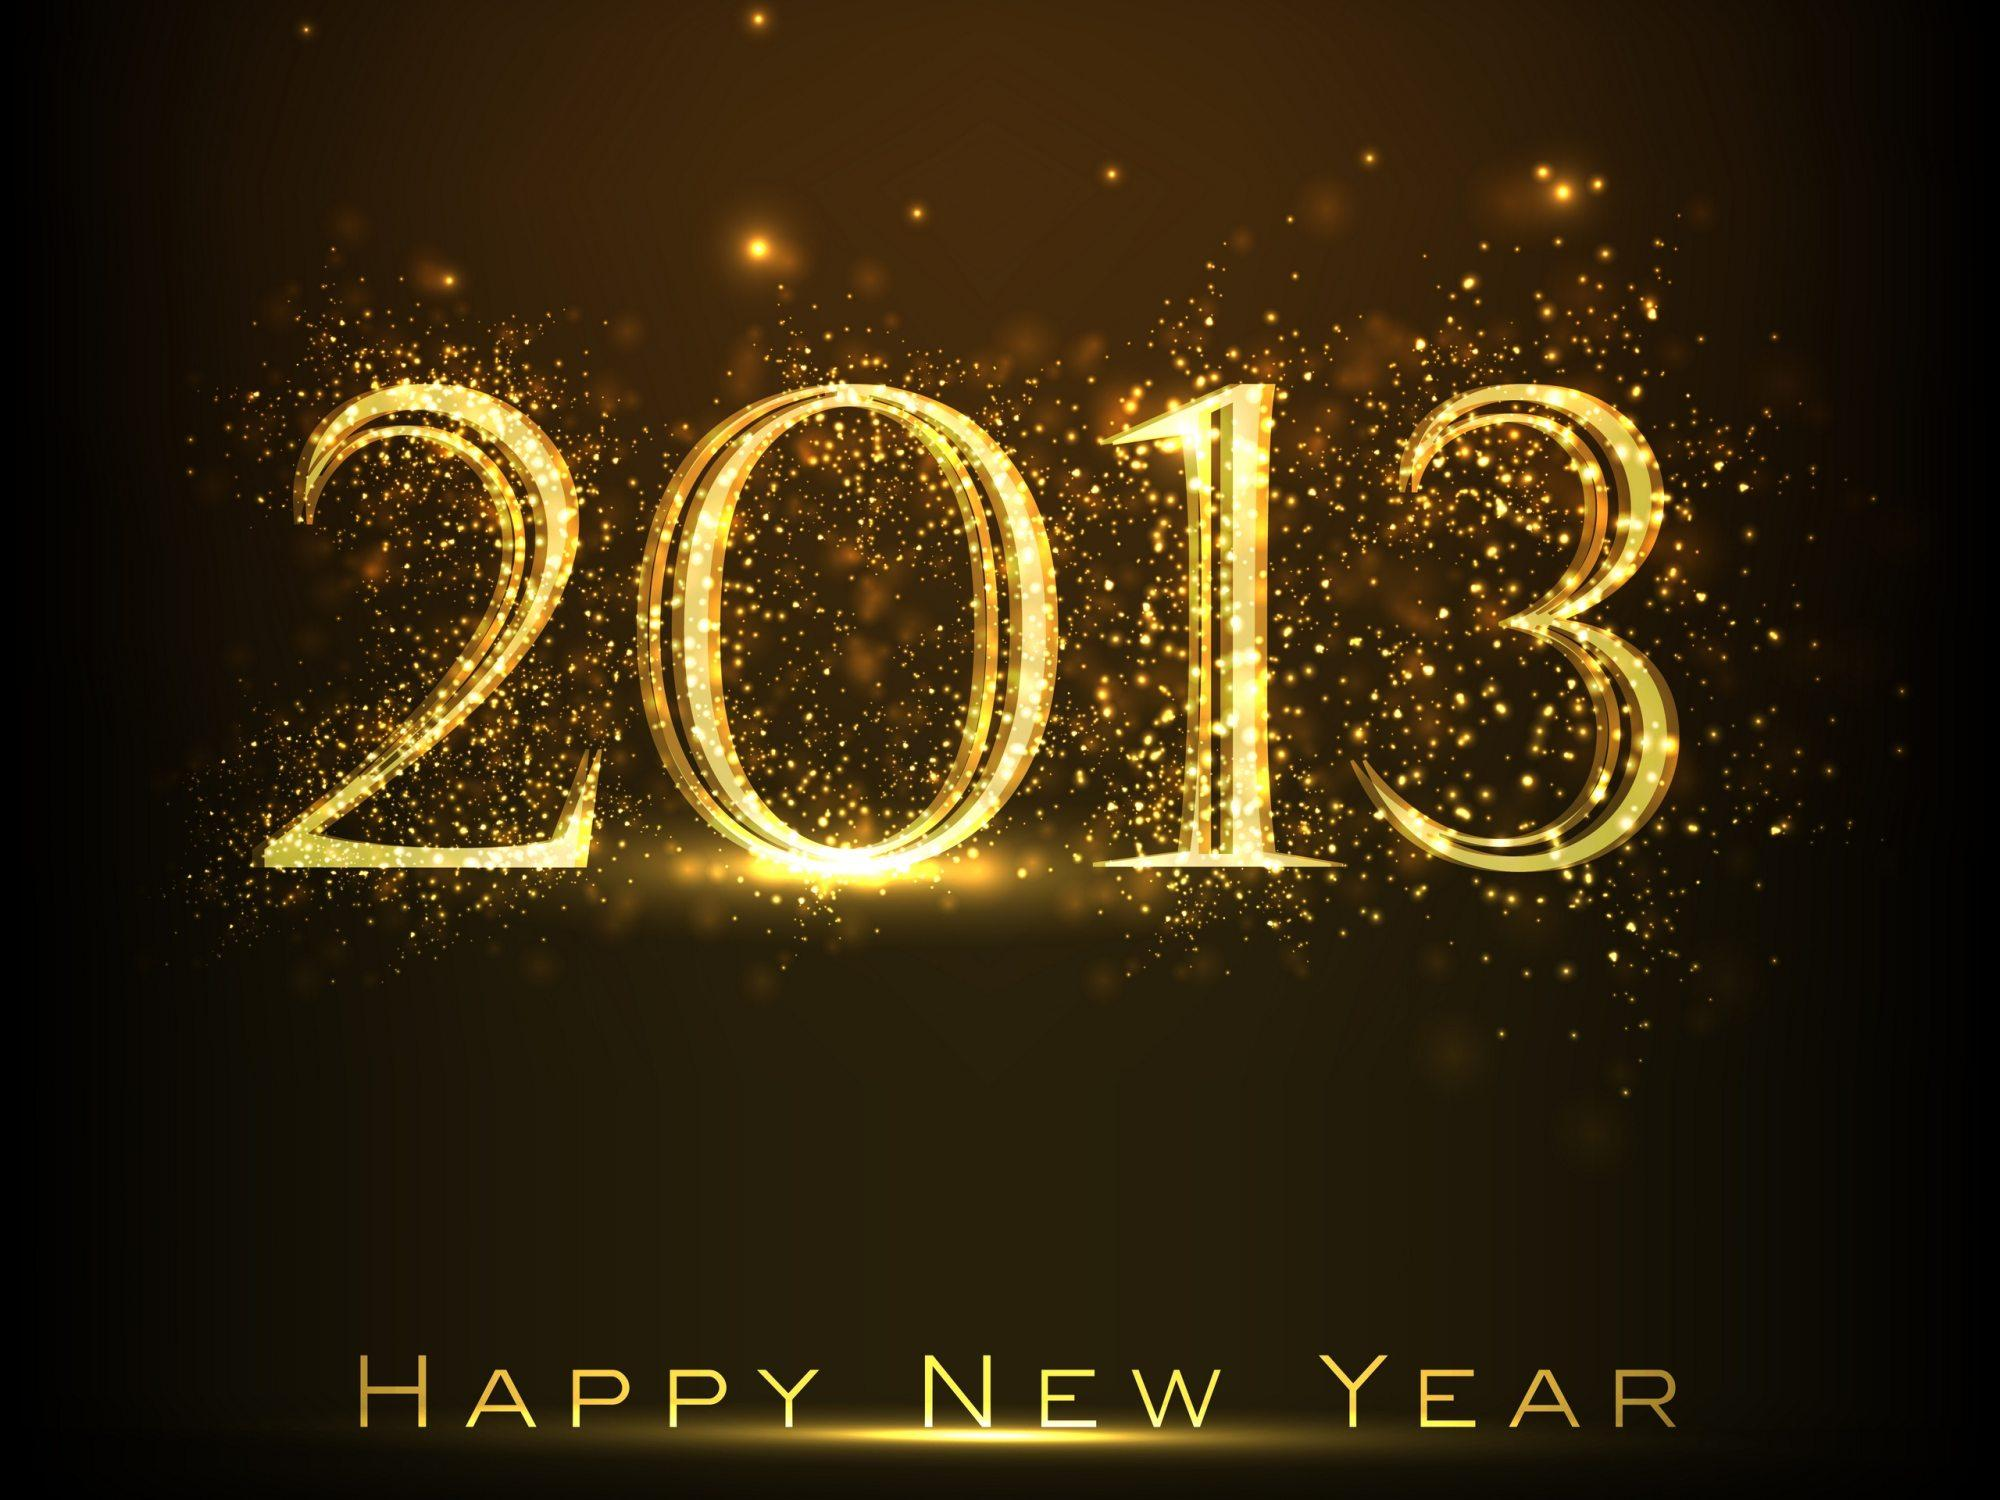 Happy-New-Year-2013-images (2)